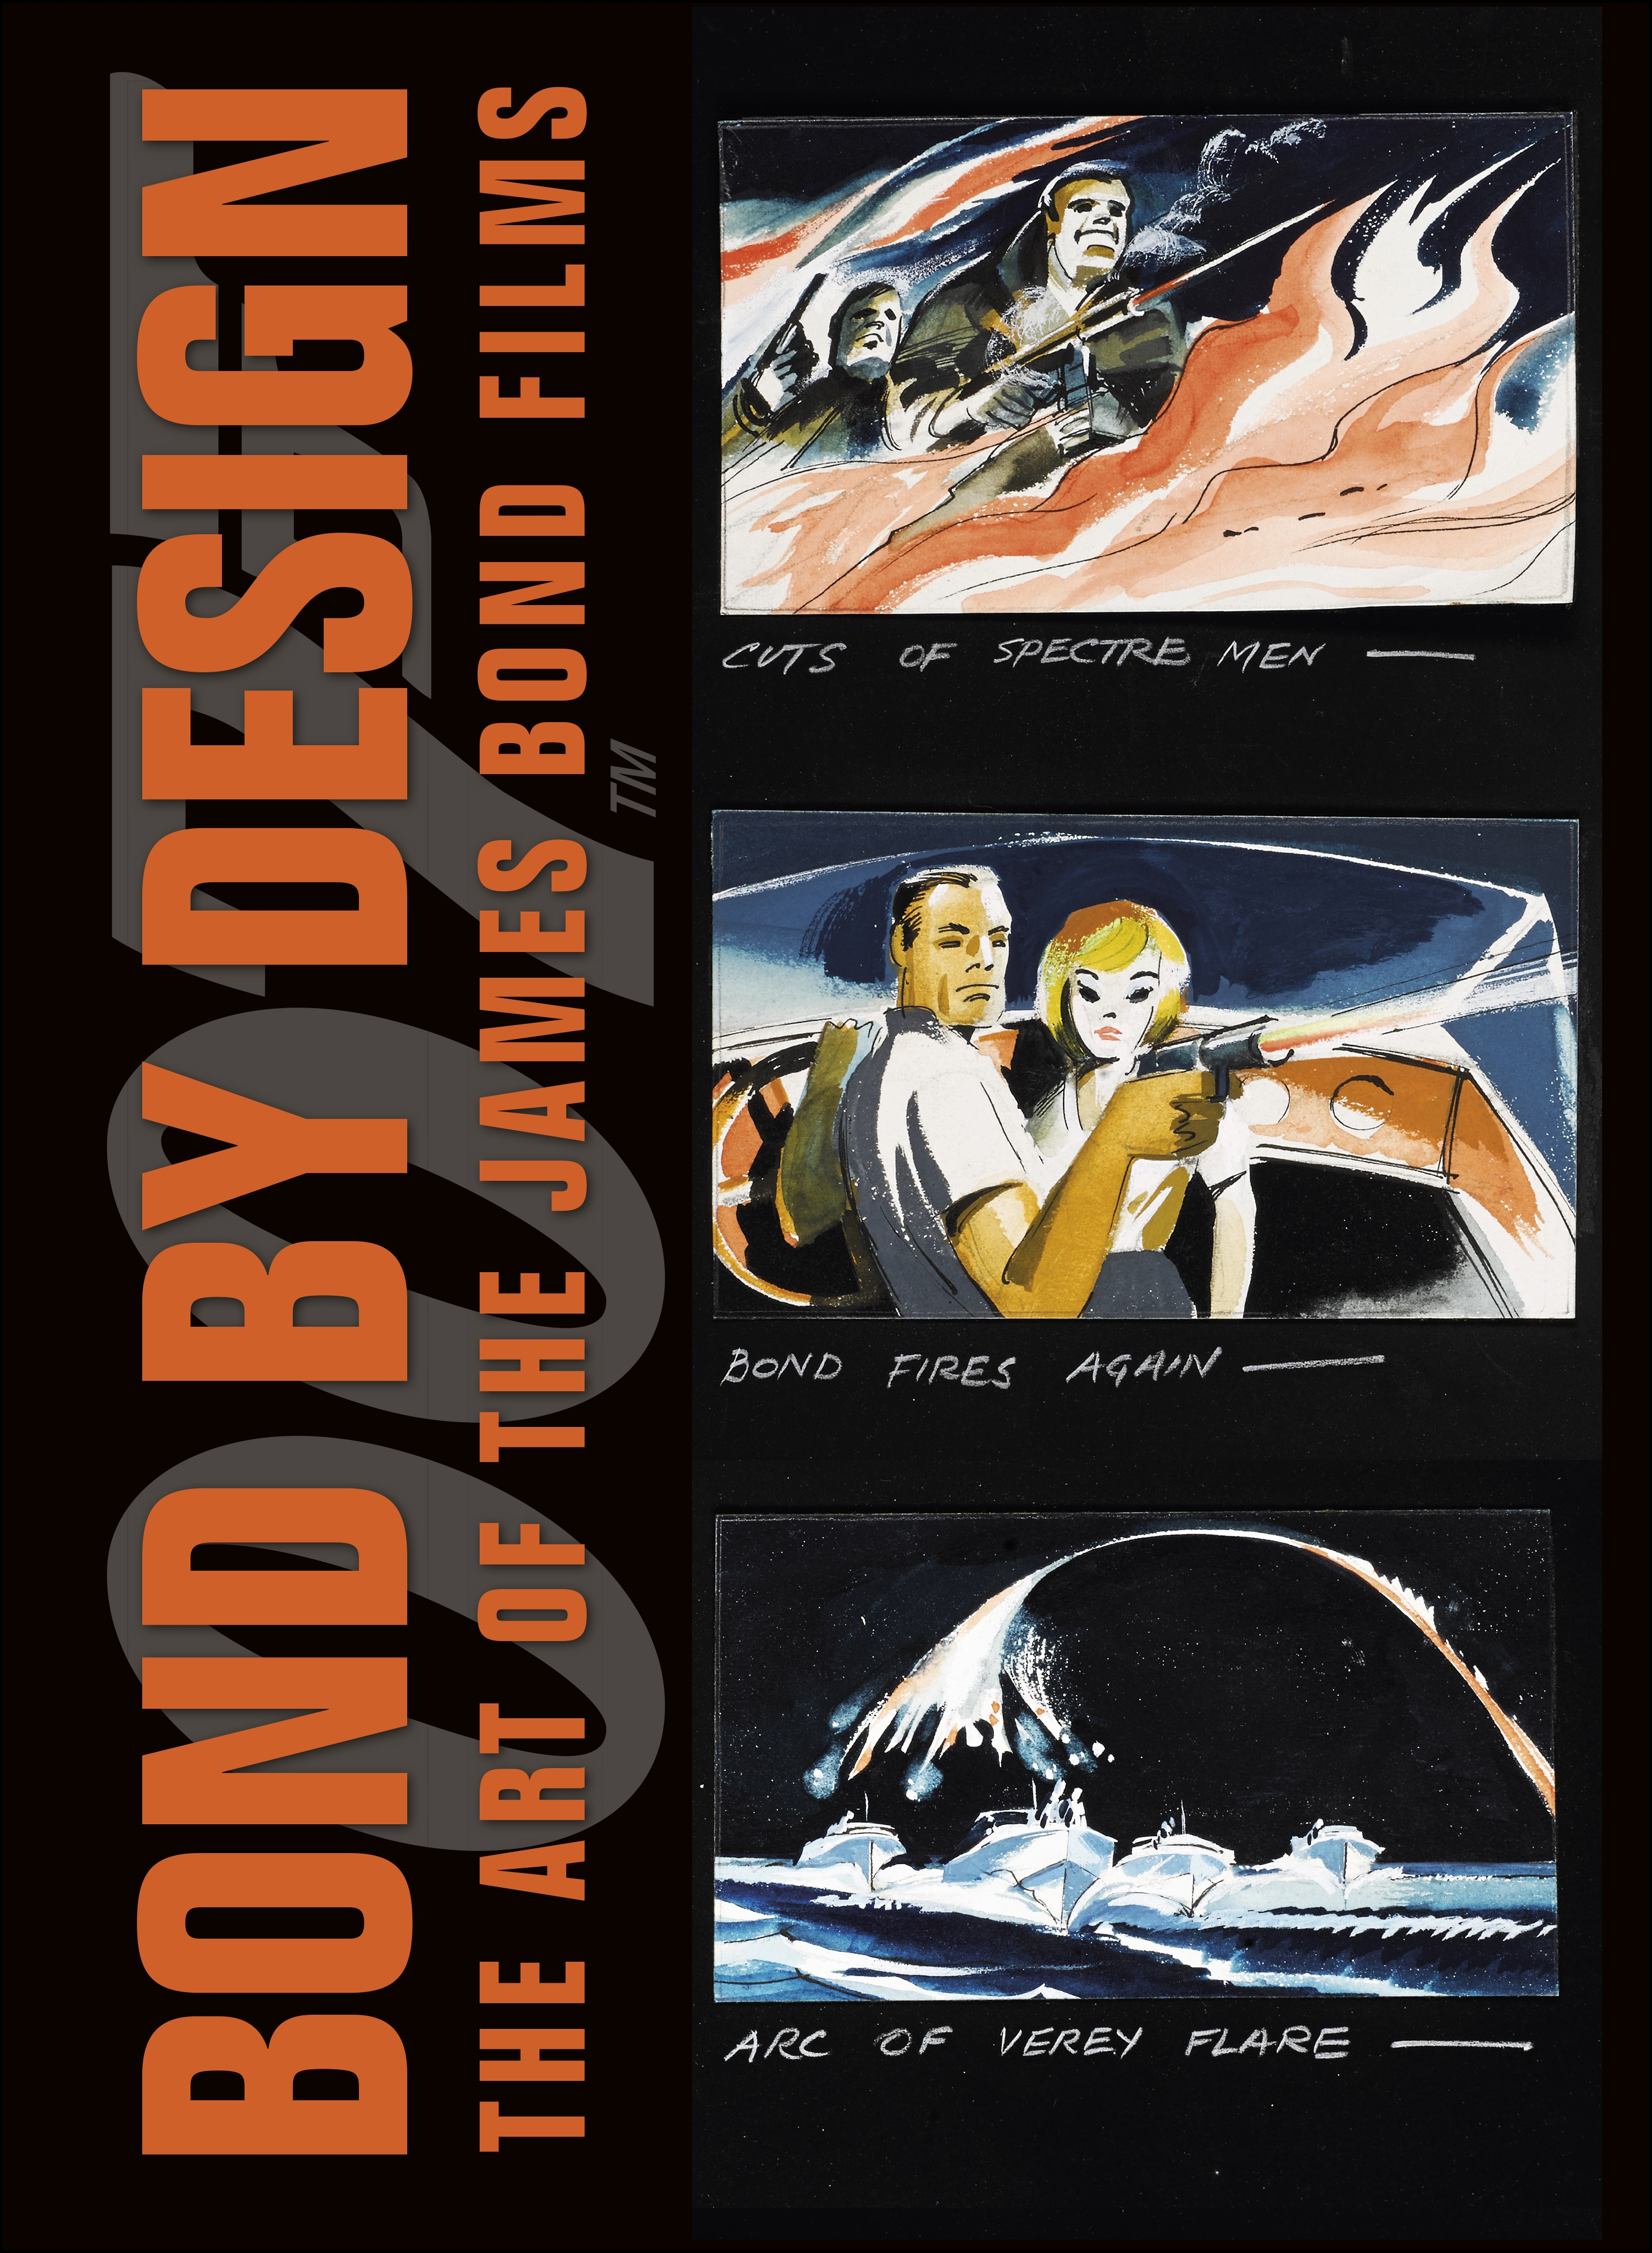 Bond By Design: New official book announced